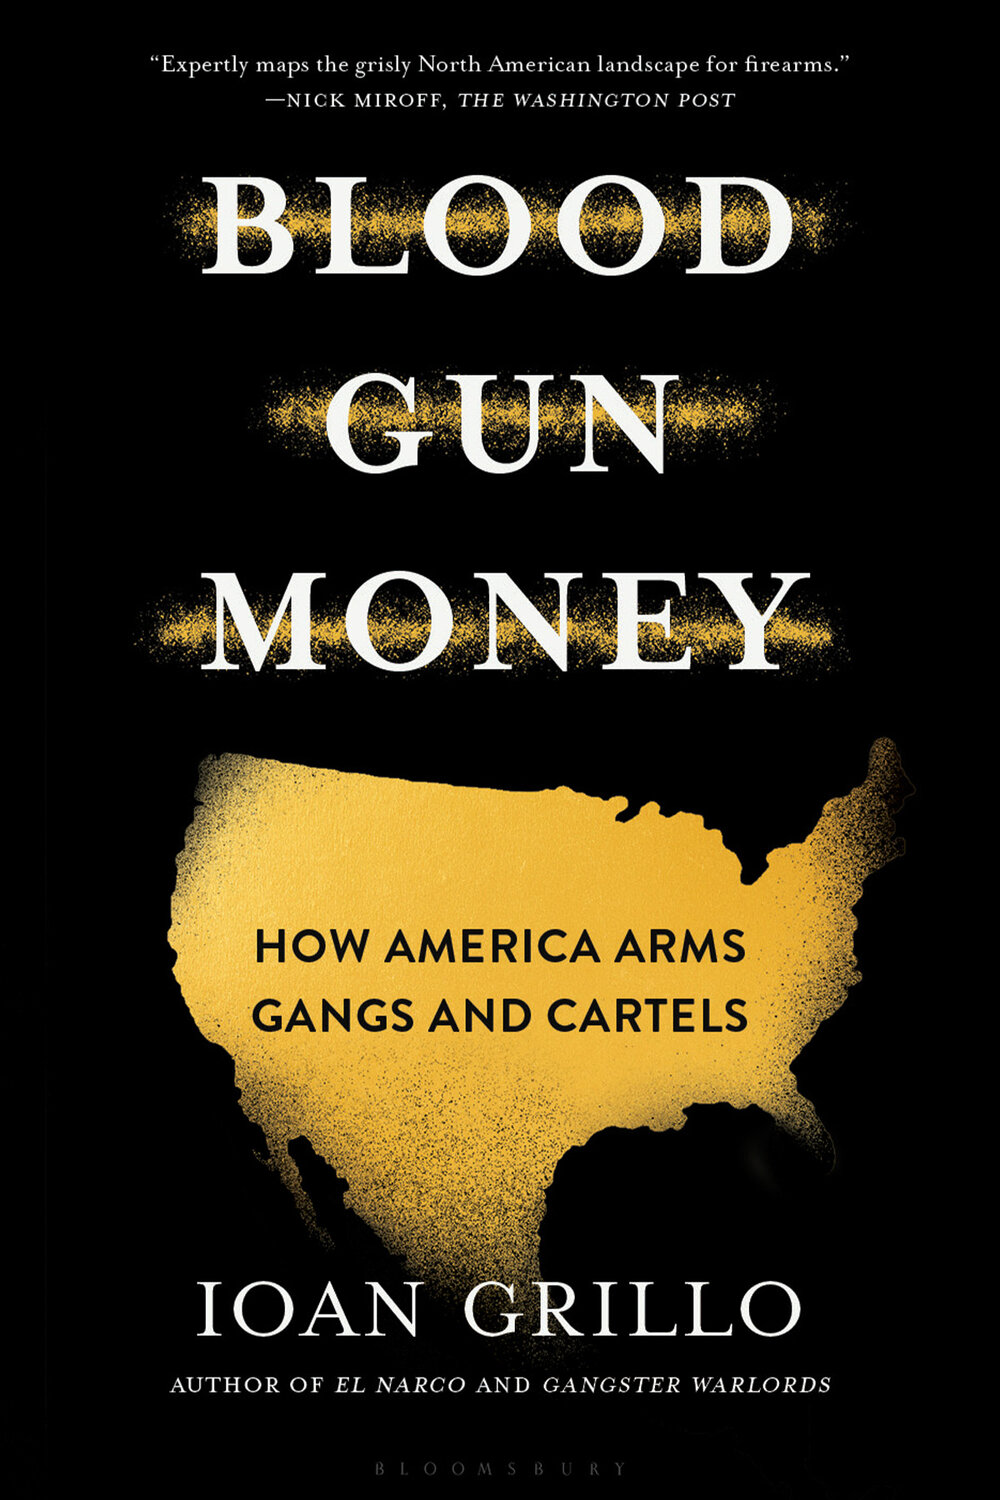 Blood Gun Money: How America Arms Gangs and Cartels by Ioan Grillo